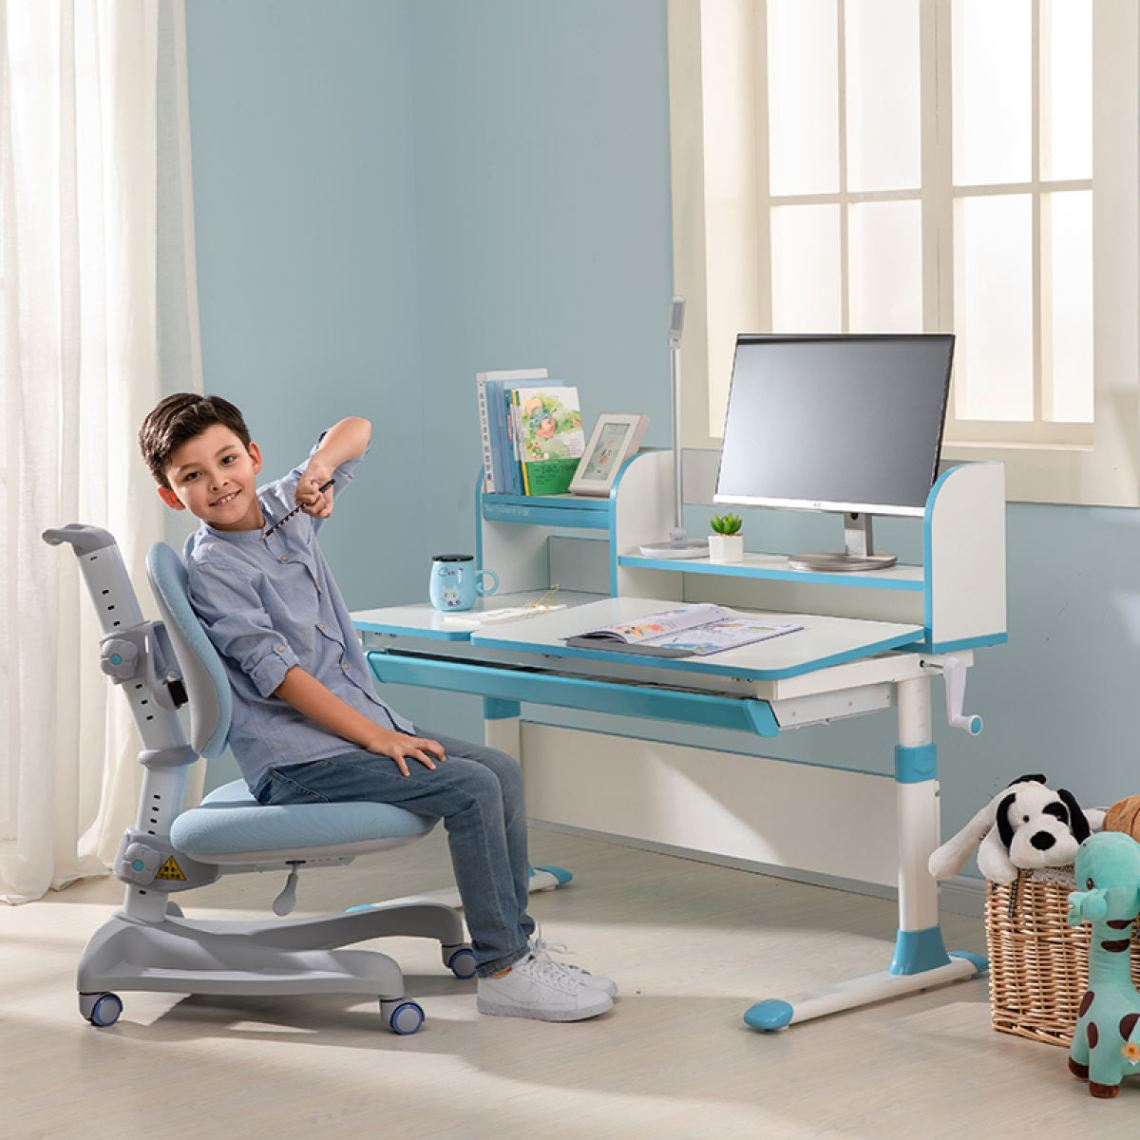 10 Best Study Table for Kids in Singapore